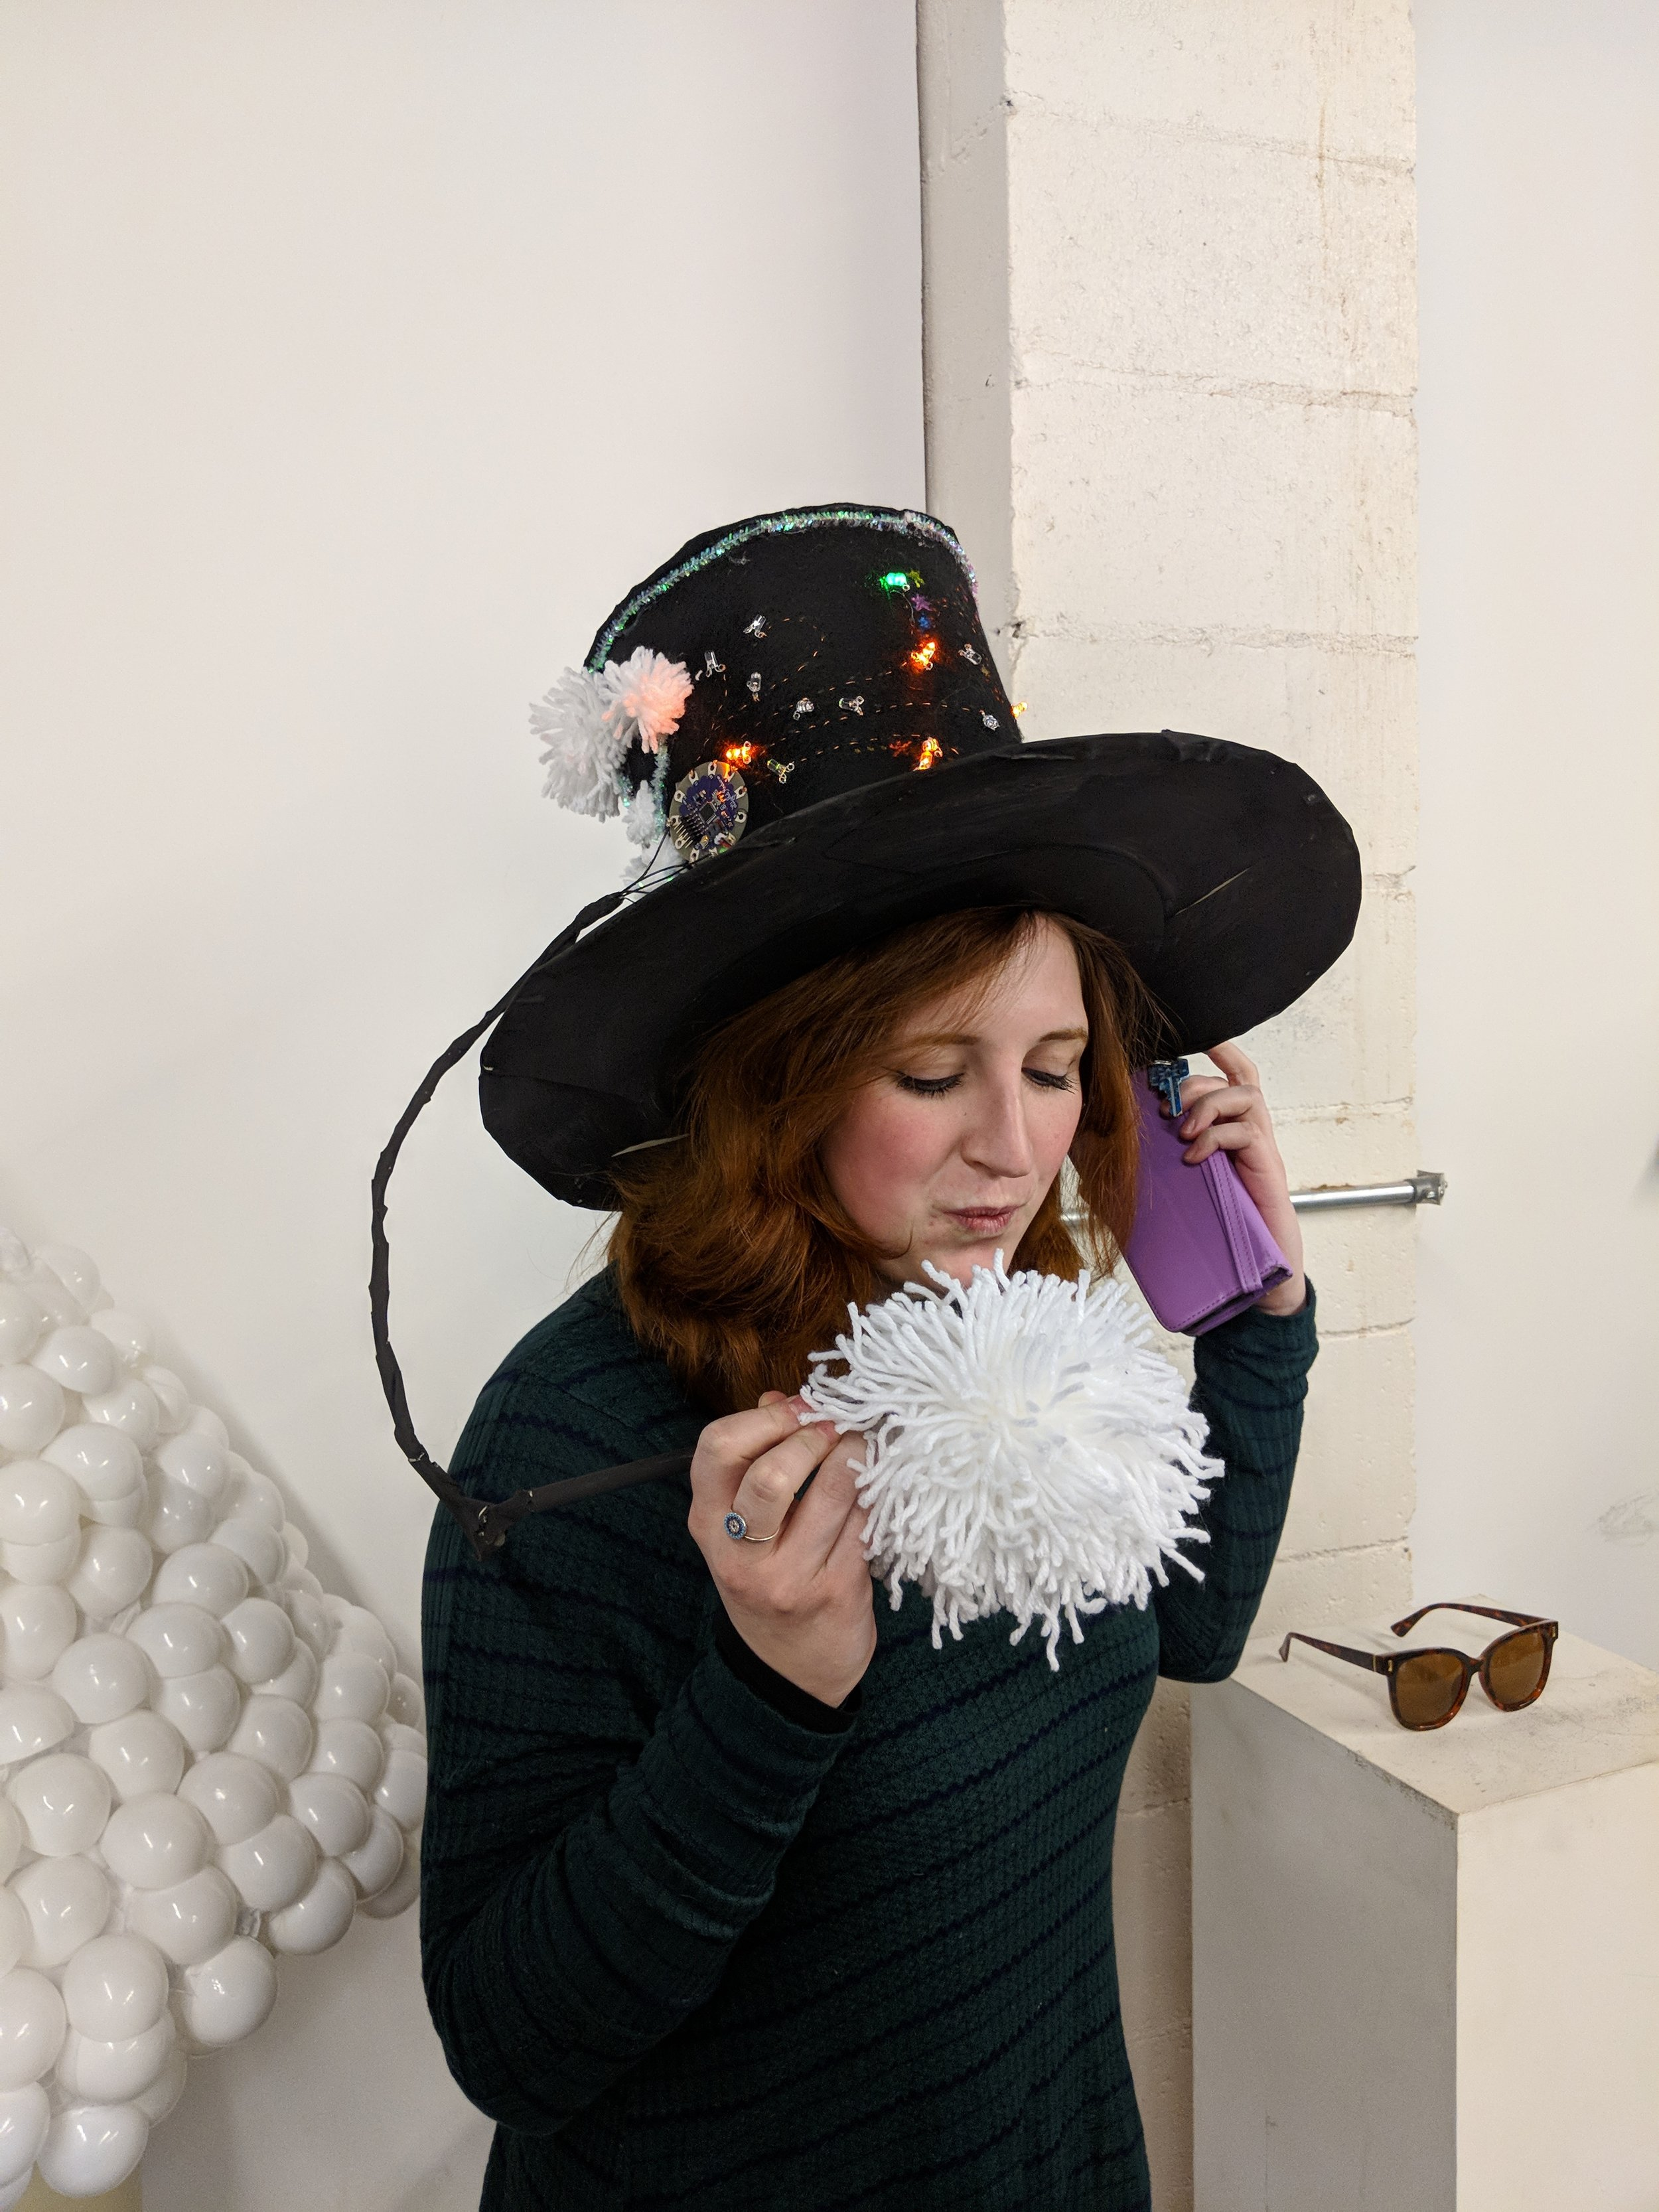 The pompom has an embedded sound sensor with a very sensitively calibrated electret mic.